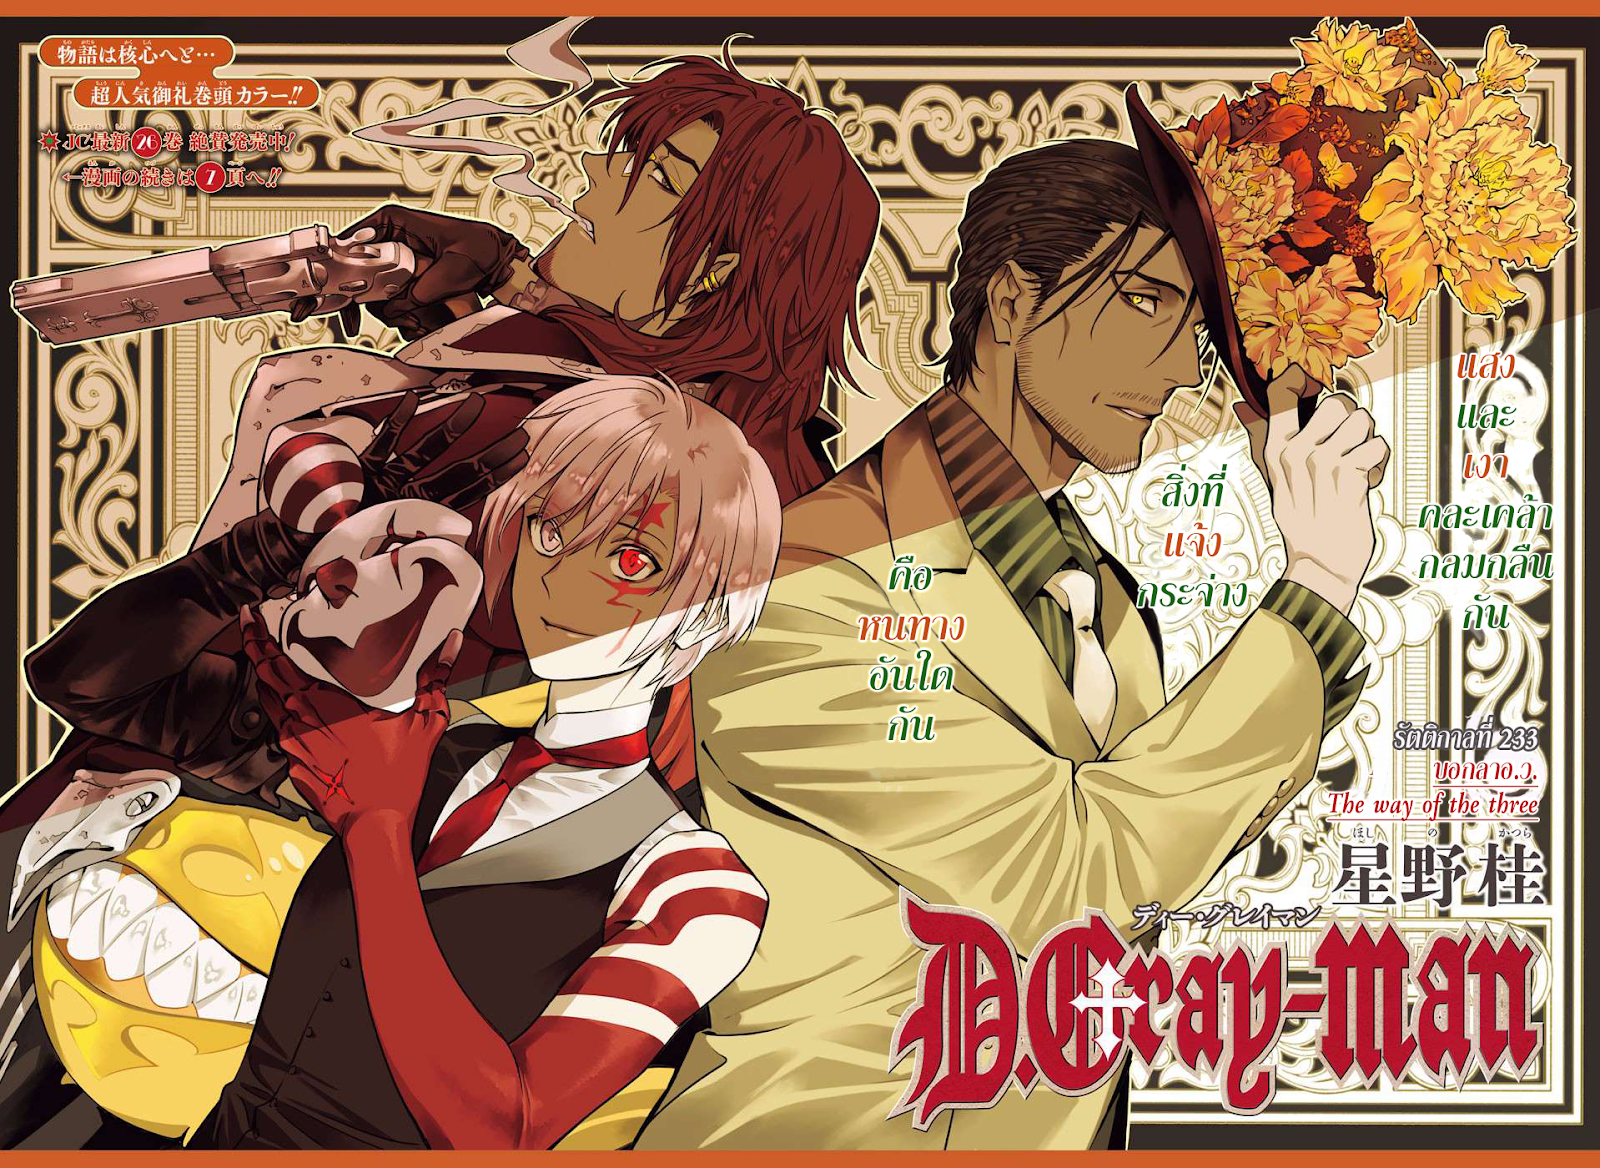 D.Gray-man 233 TH